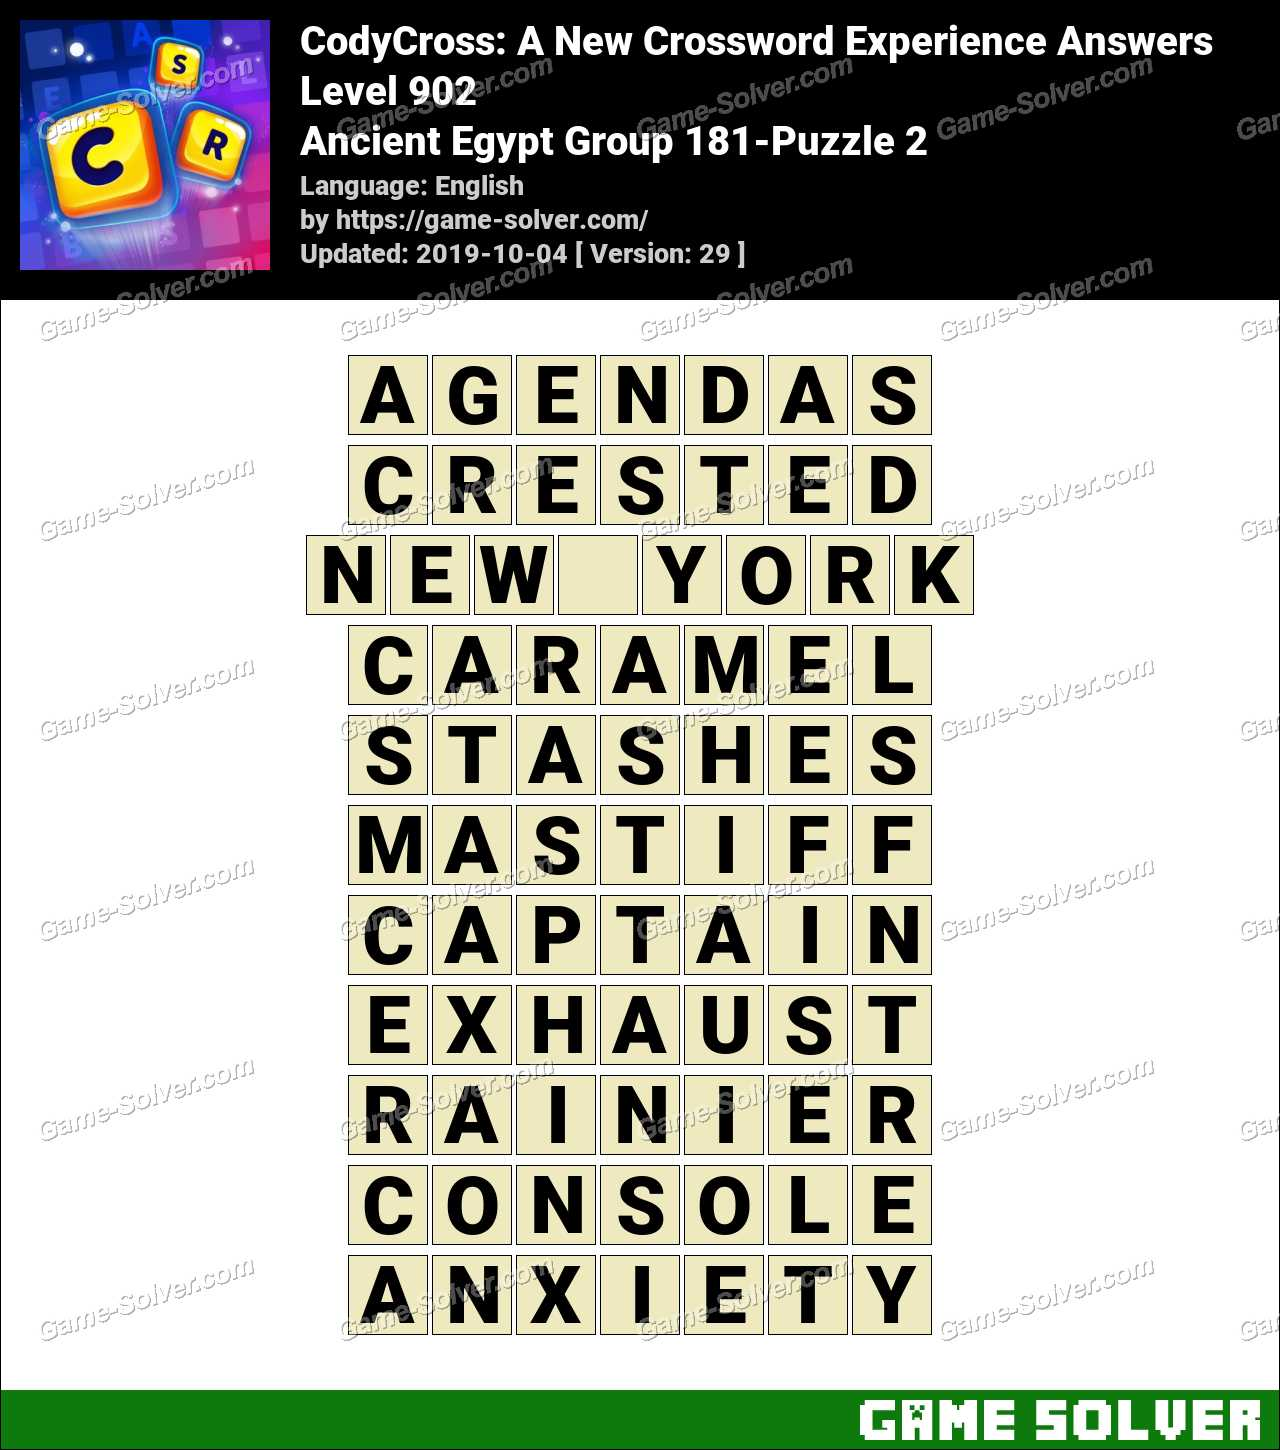 CodyCross Ancient Egypt Group 181-Puzzle 2 Answers